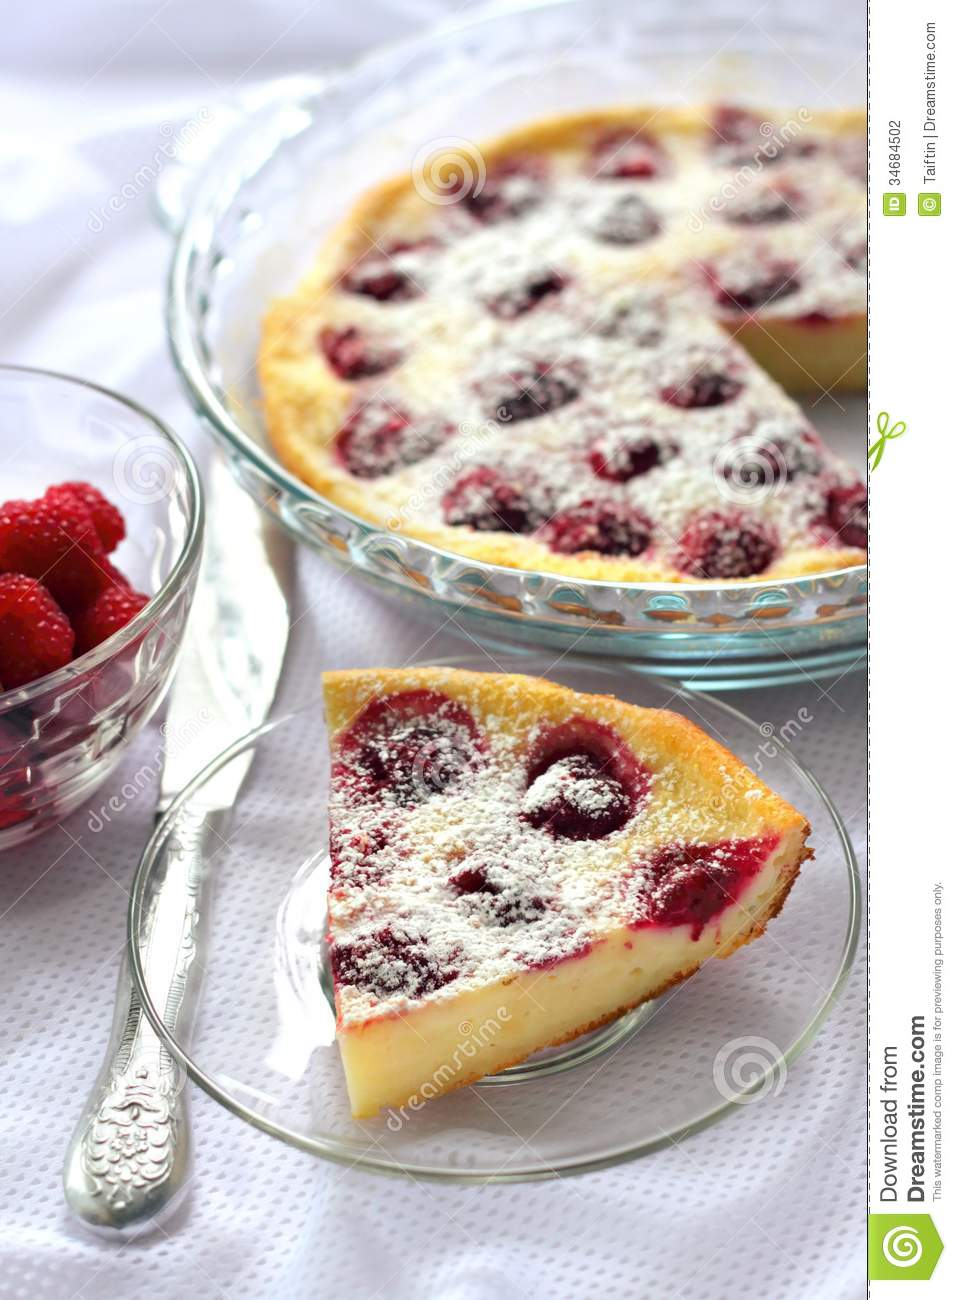 Cottage cheese and berry pie: how to make such baked goods 82